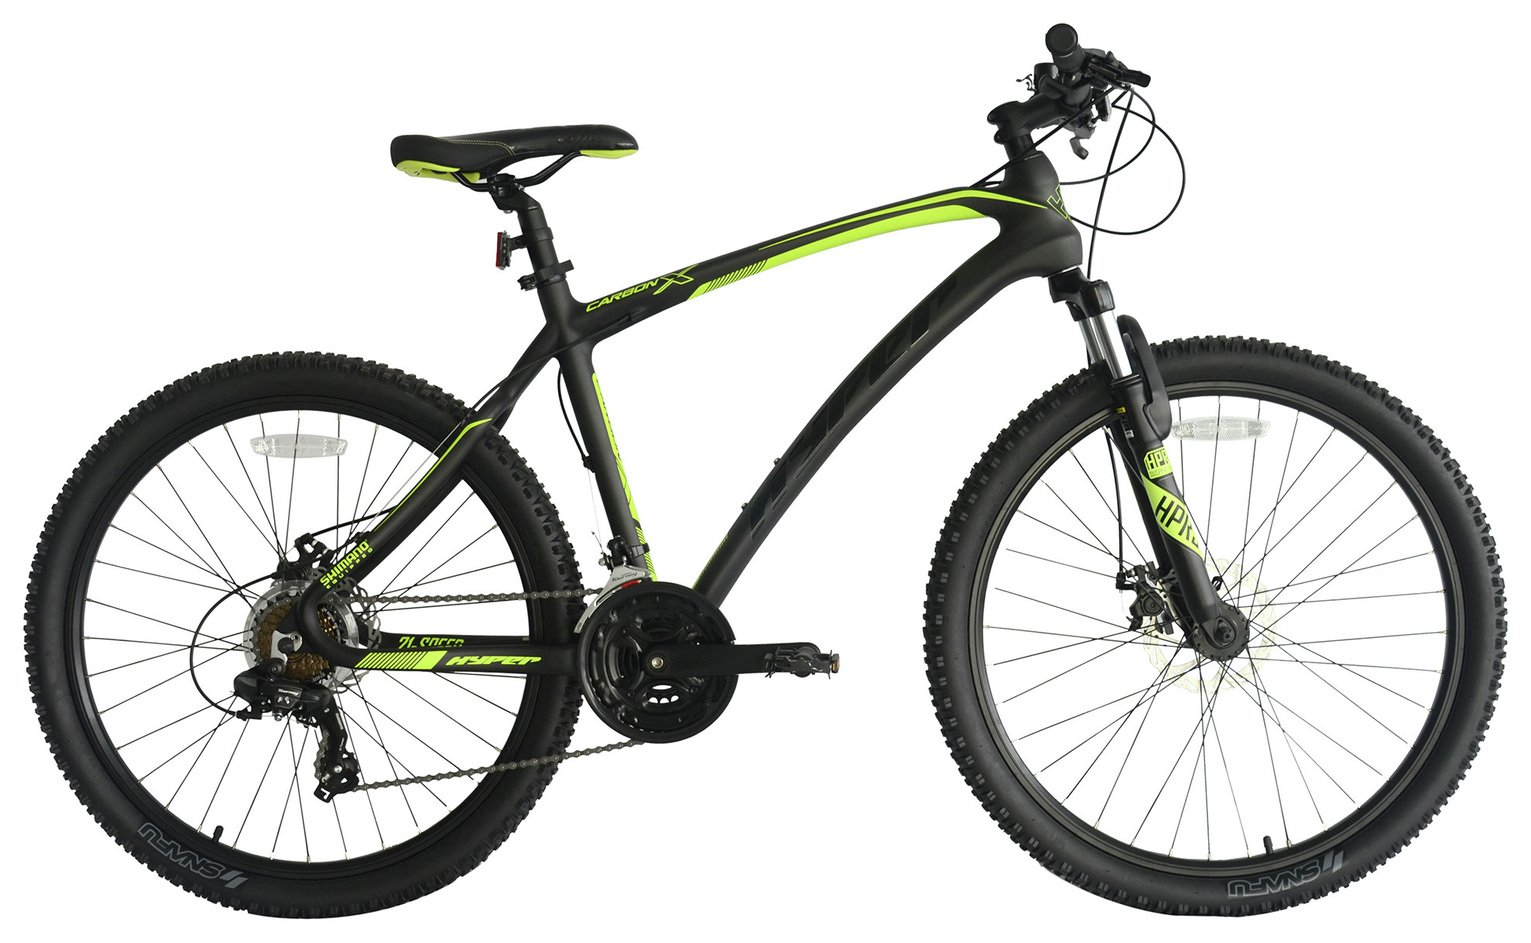 Hyper Full Carbon 26 Inch Wheel Size Unisex Mountain Bike £699.99 @ Argos